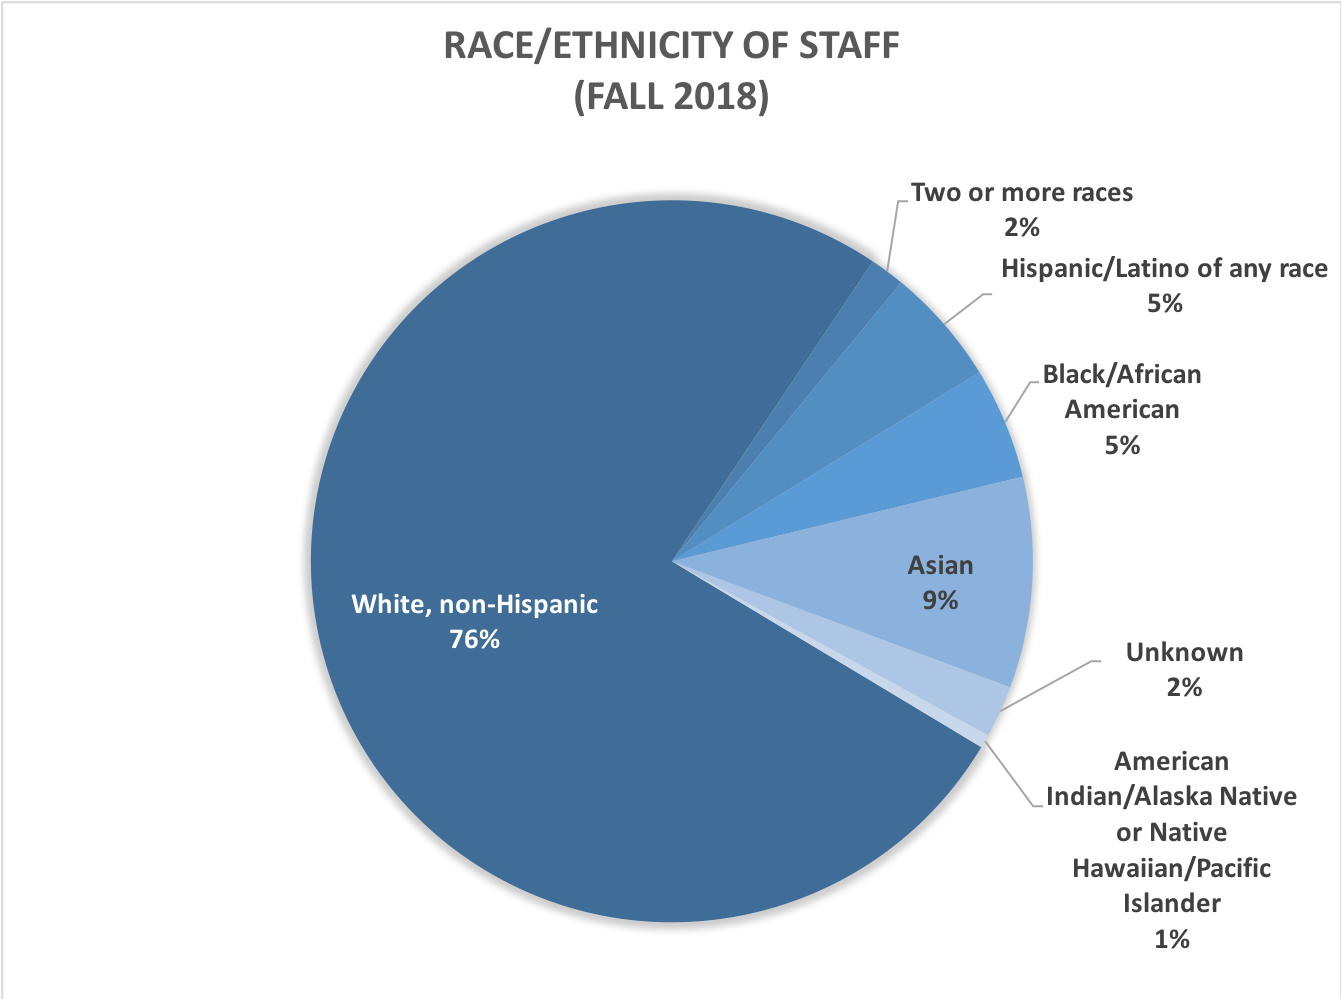 race and ethnicity of staff